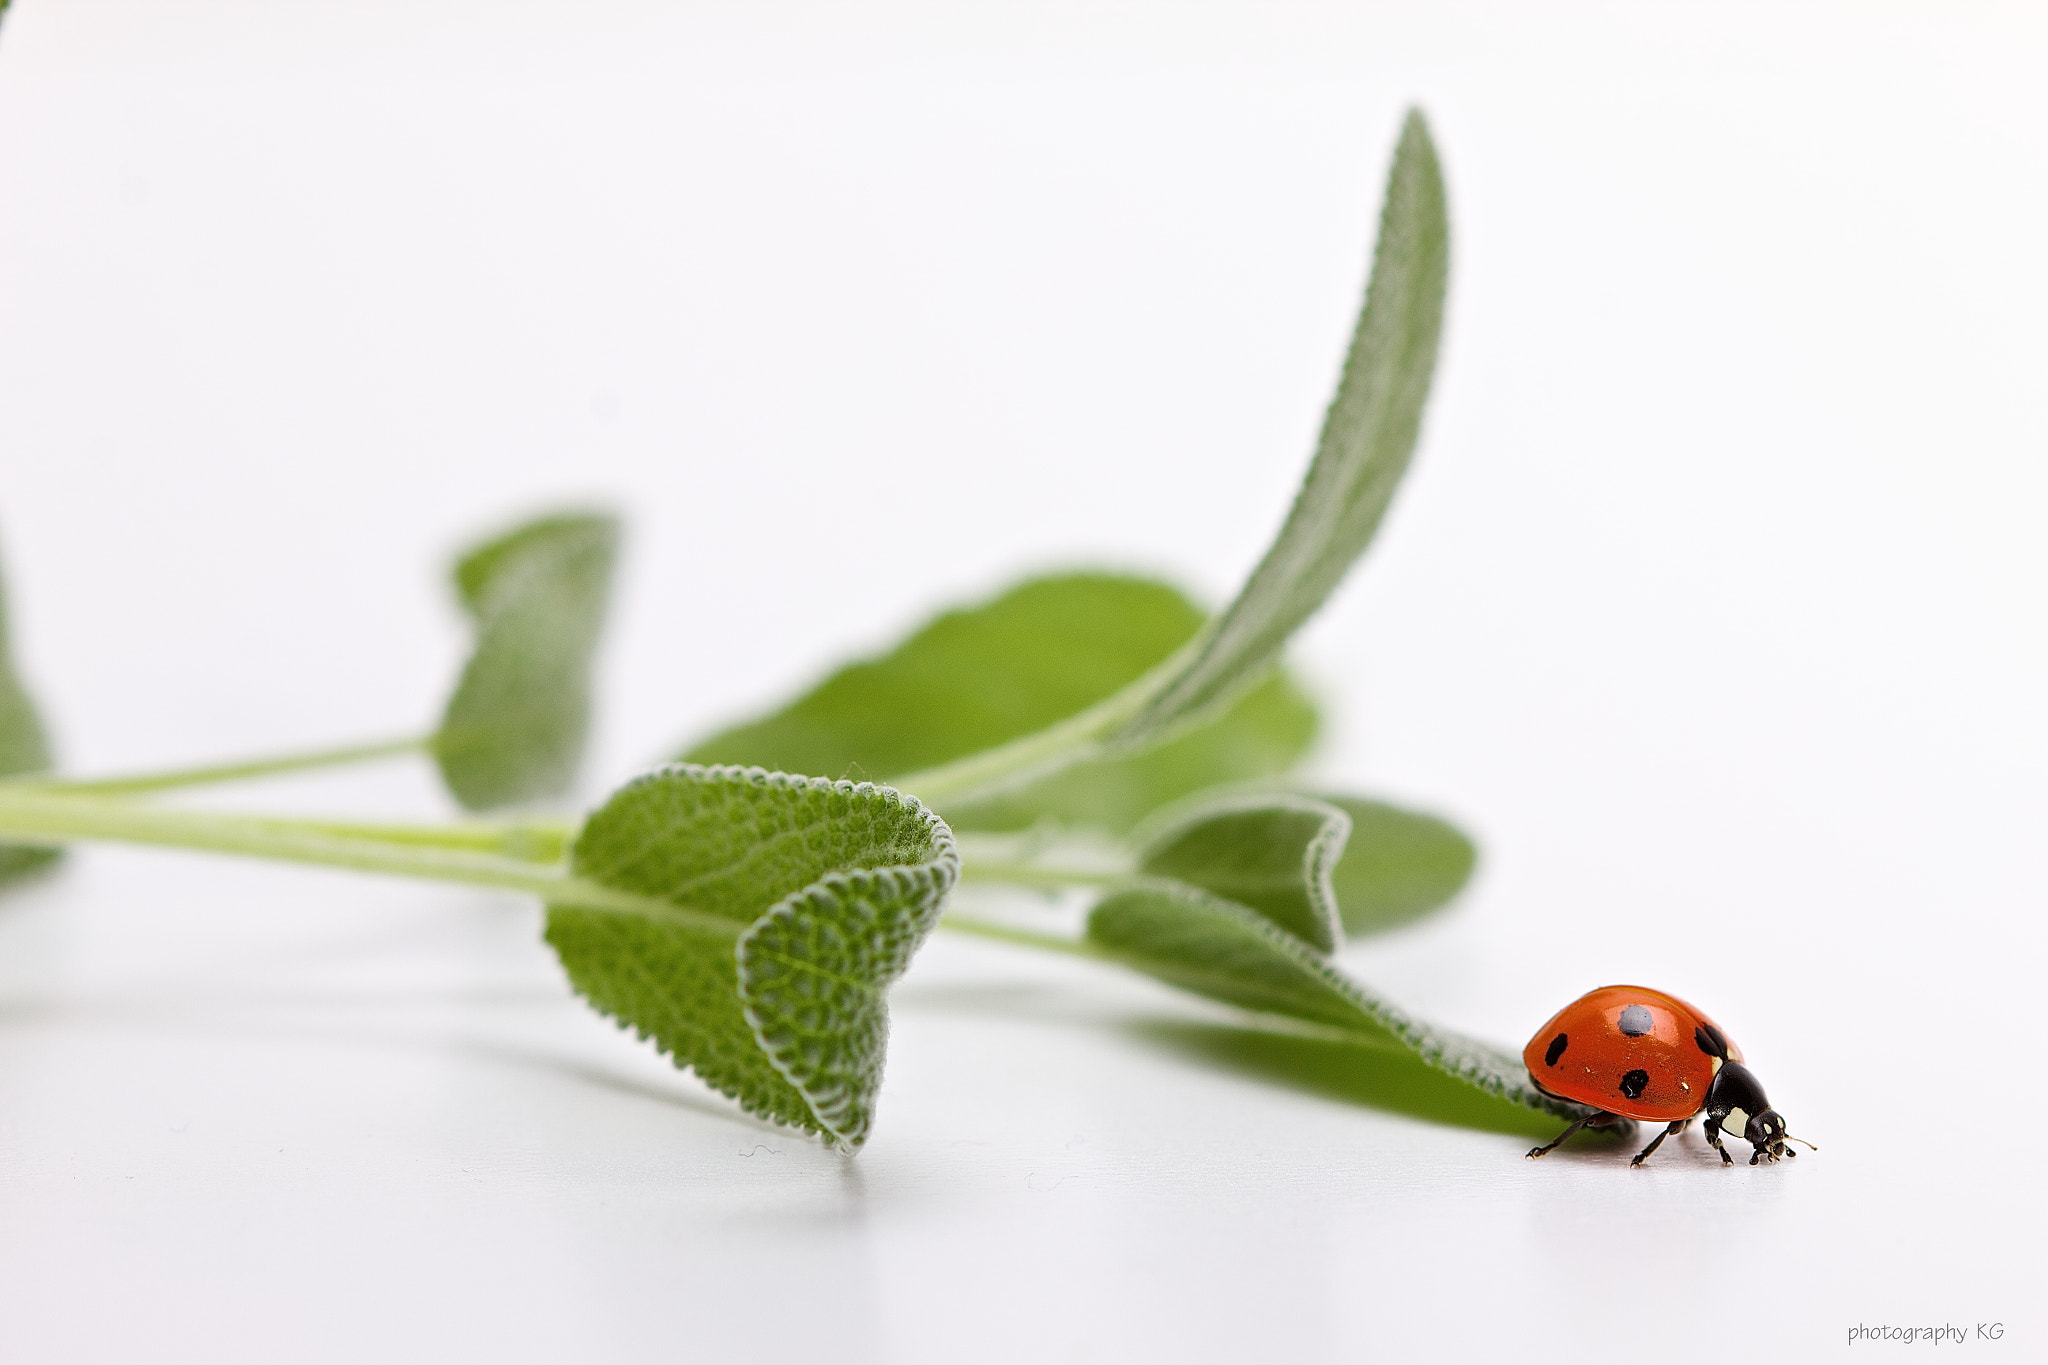 Photograph Ladybug by Katrin Gerchel on 500px